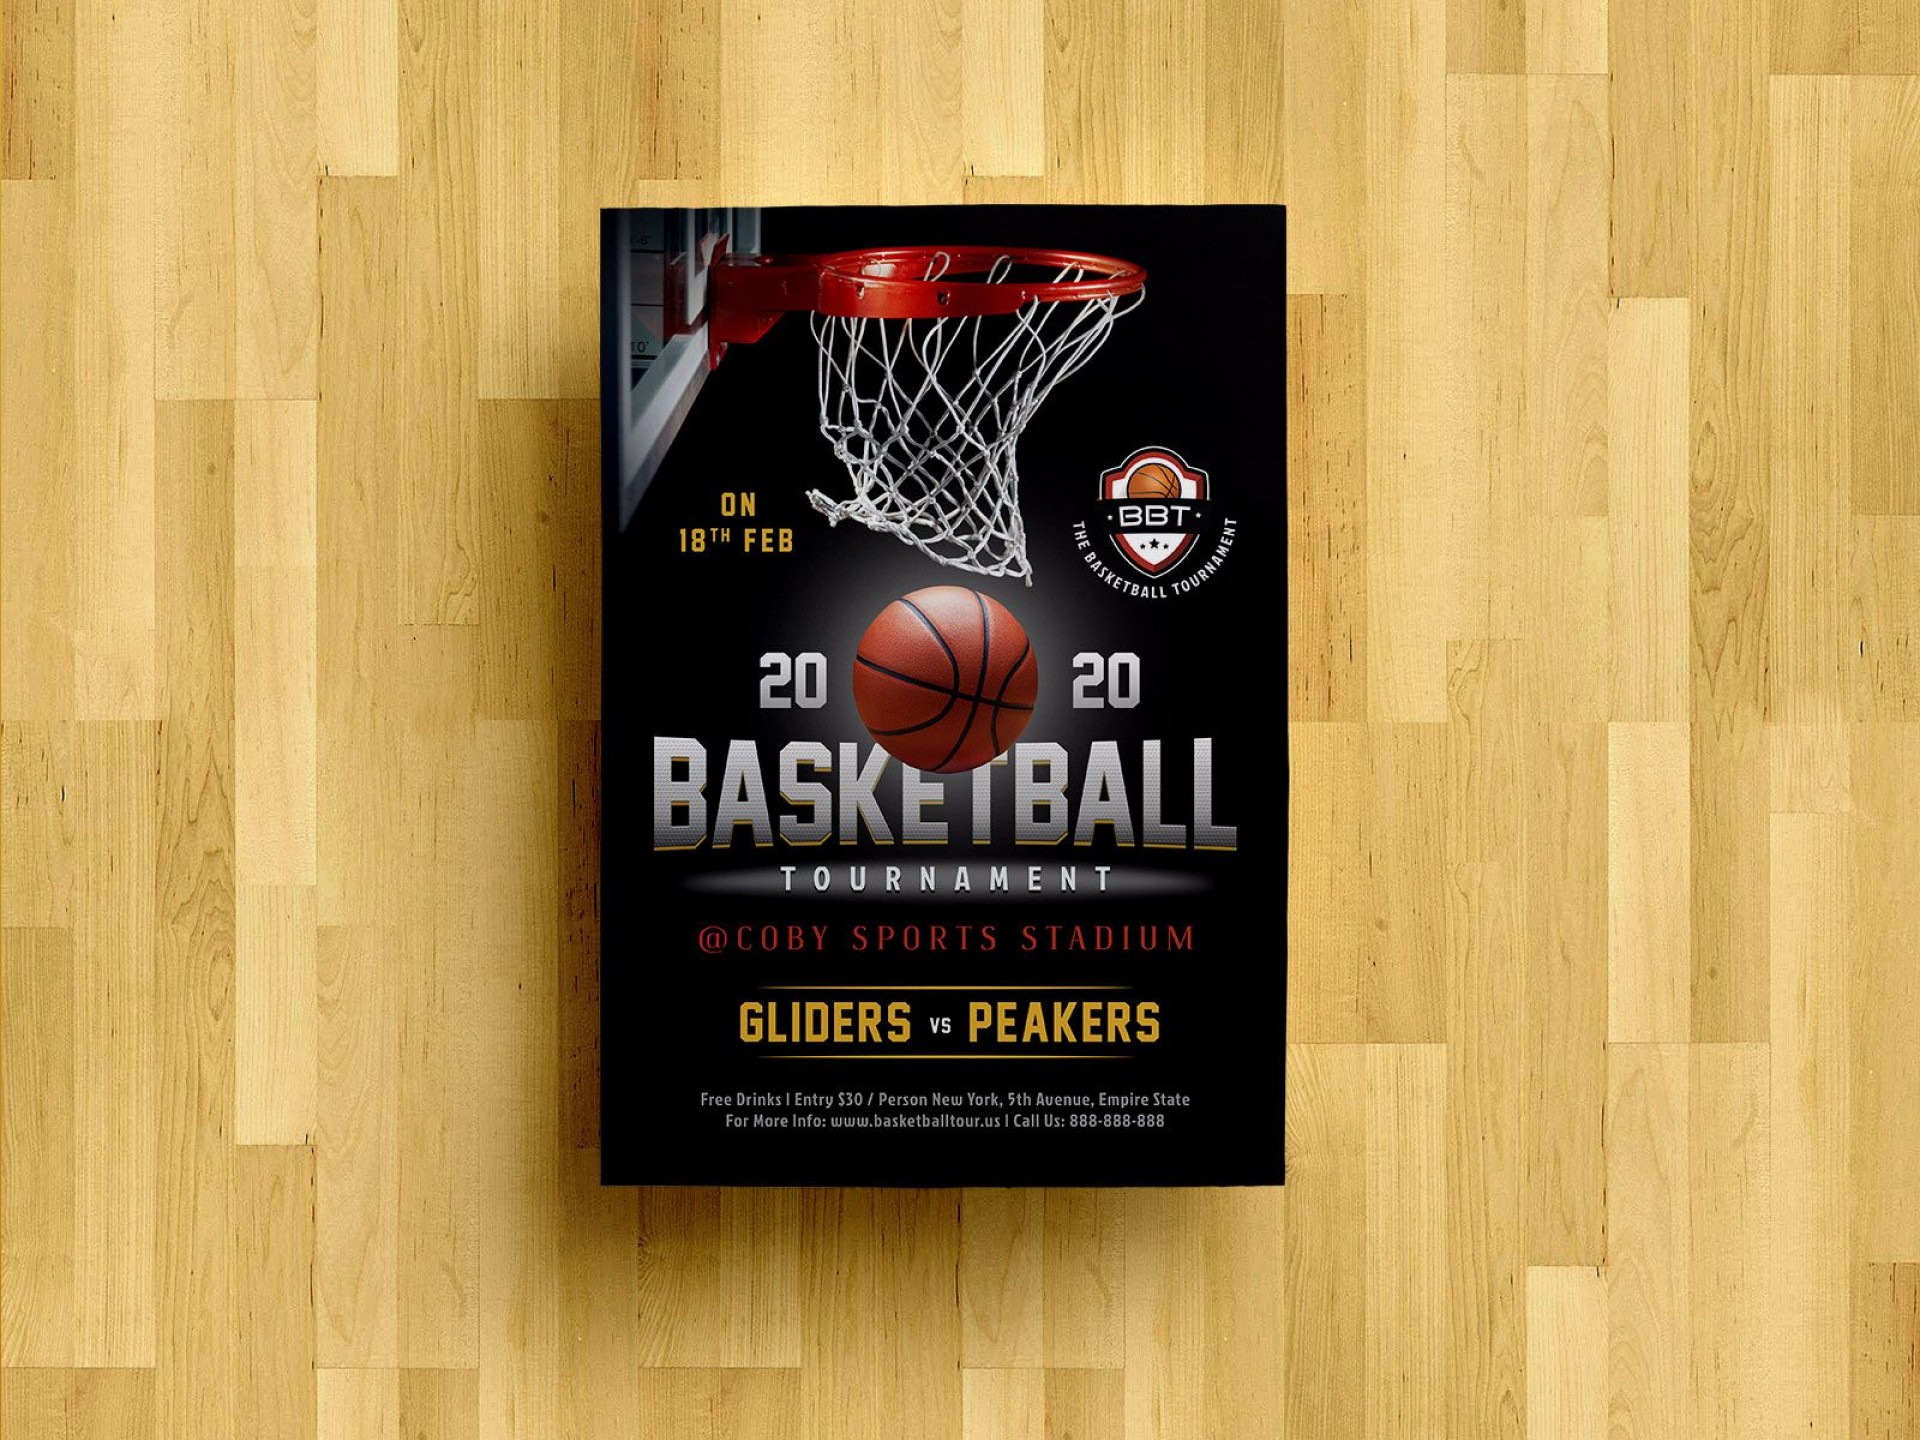 008 Striking Basketball Tournament Flyer Template Concept  3 On Free1920